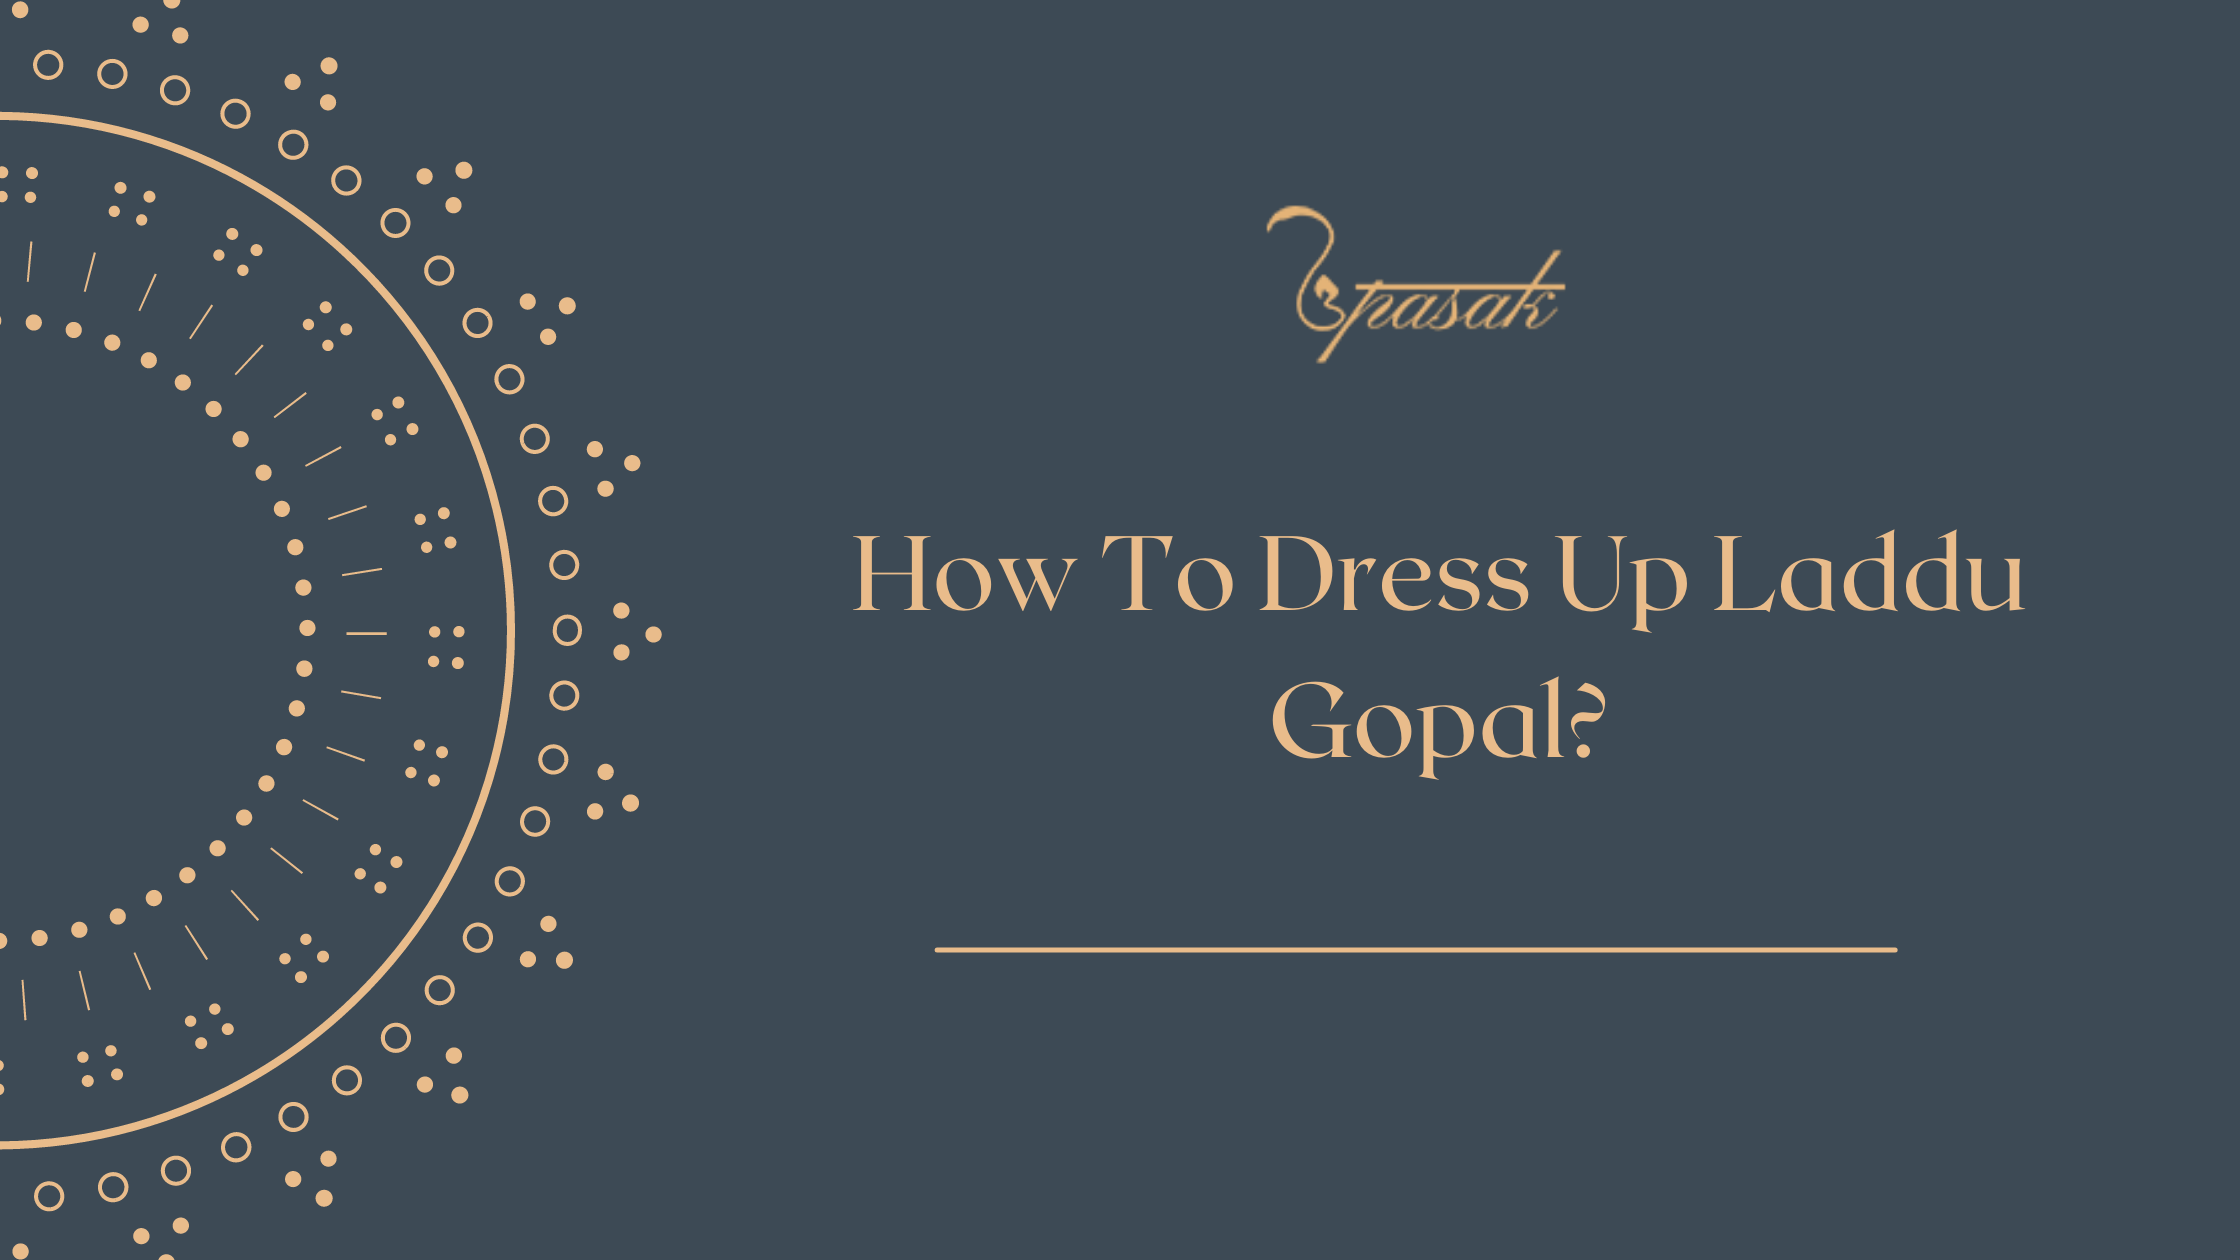 How To Dress How To Dress Up Laddu Gopal